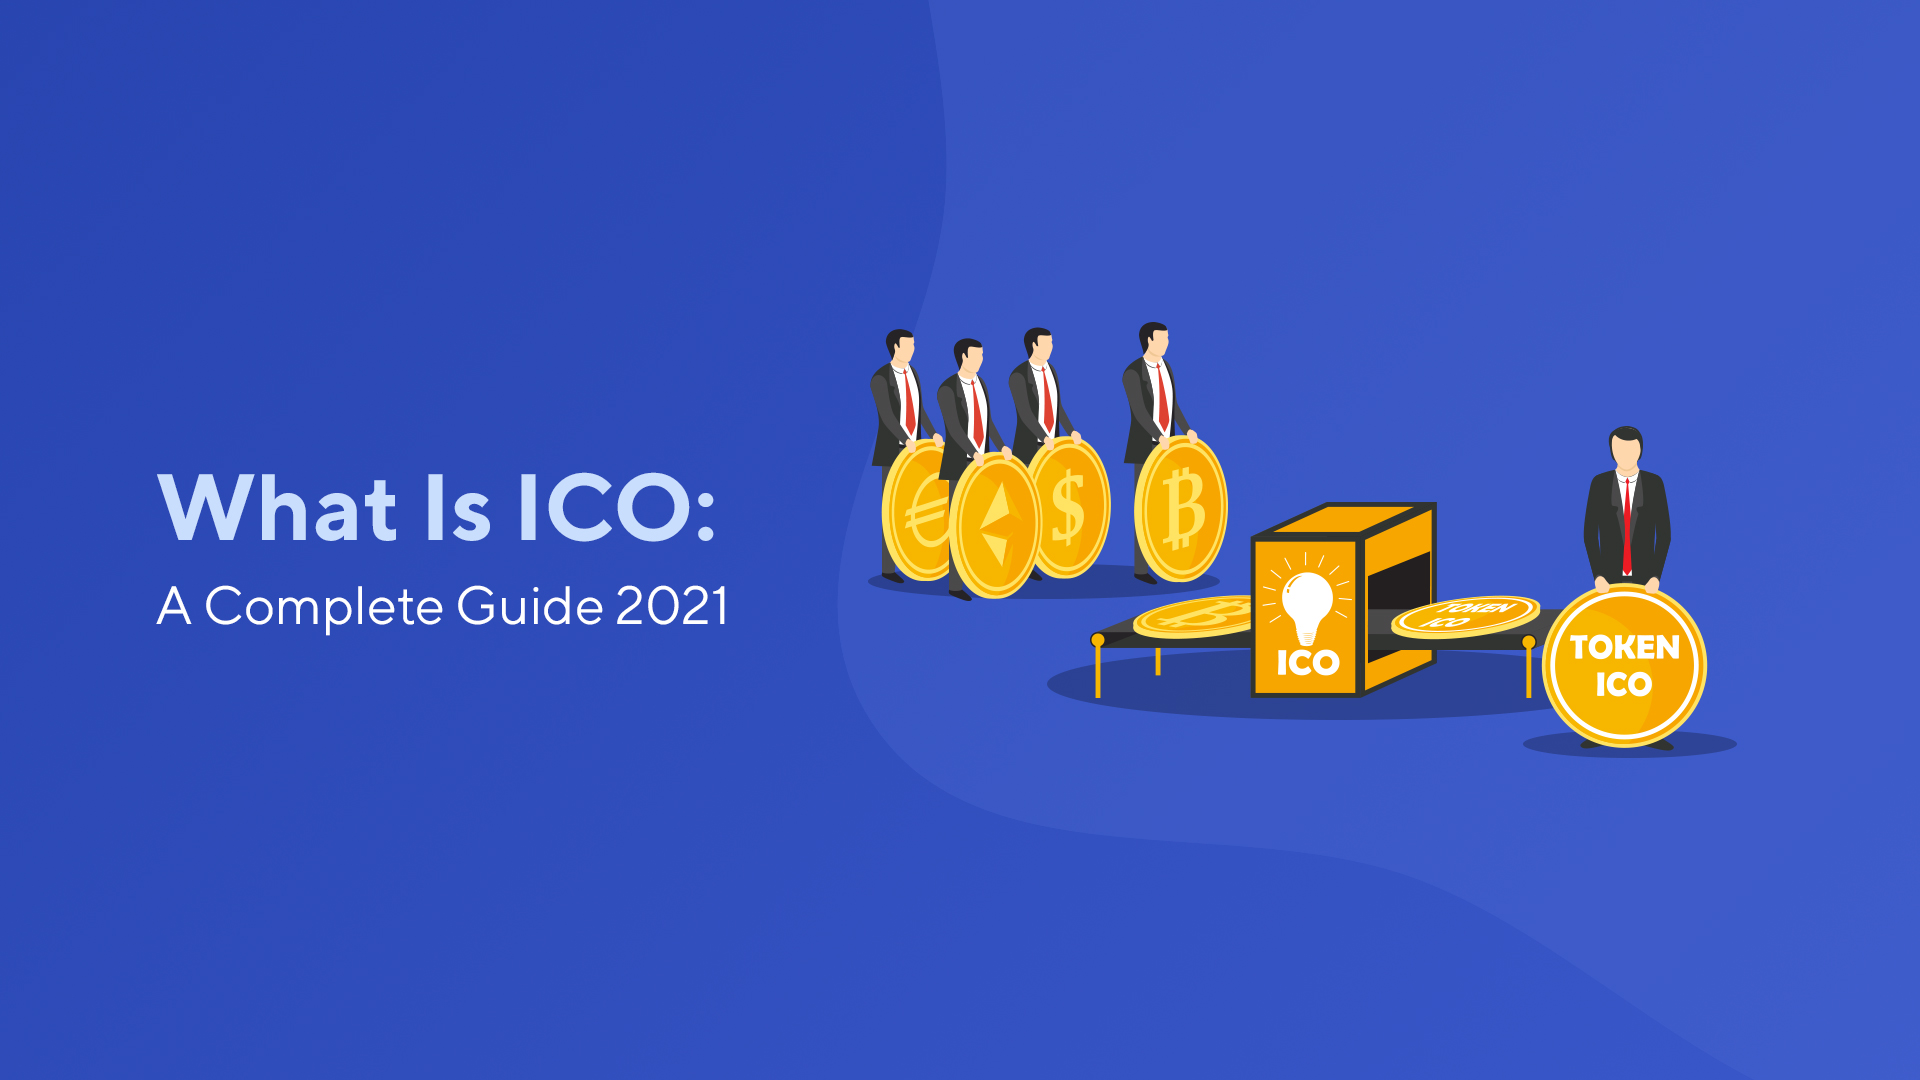 What Is ICO: A Complete Guide 2021